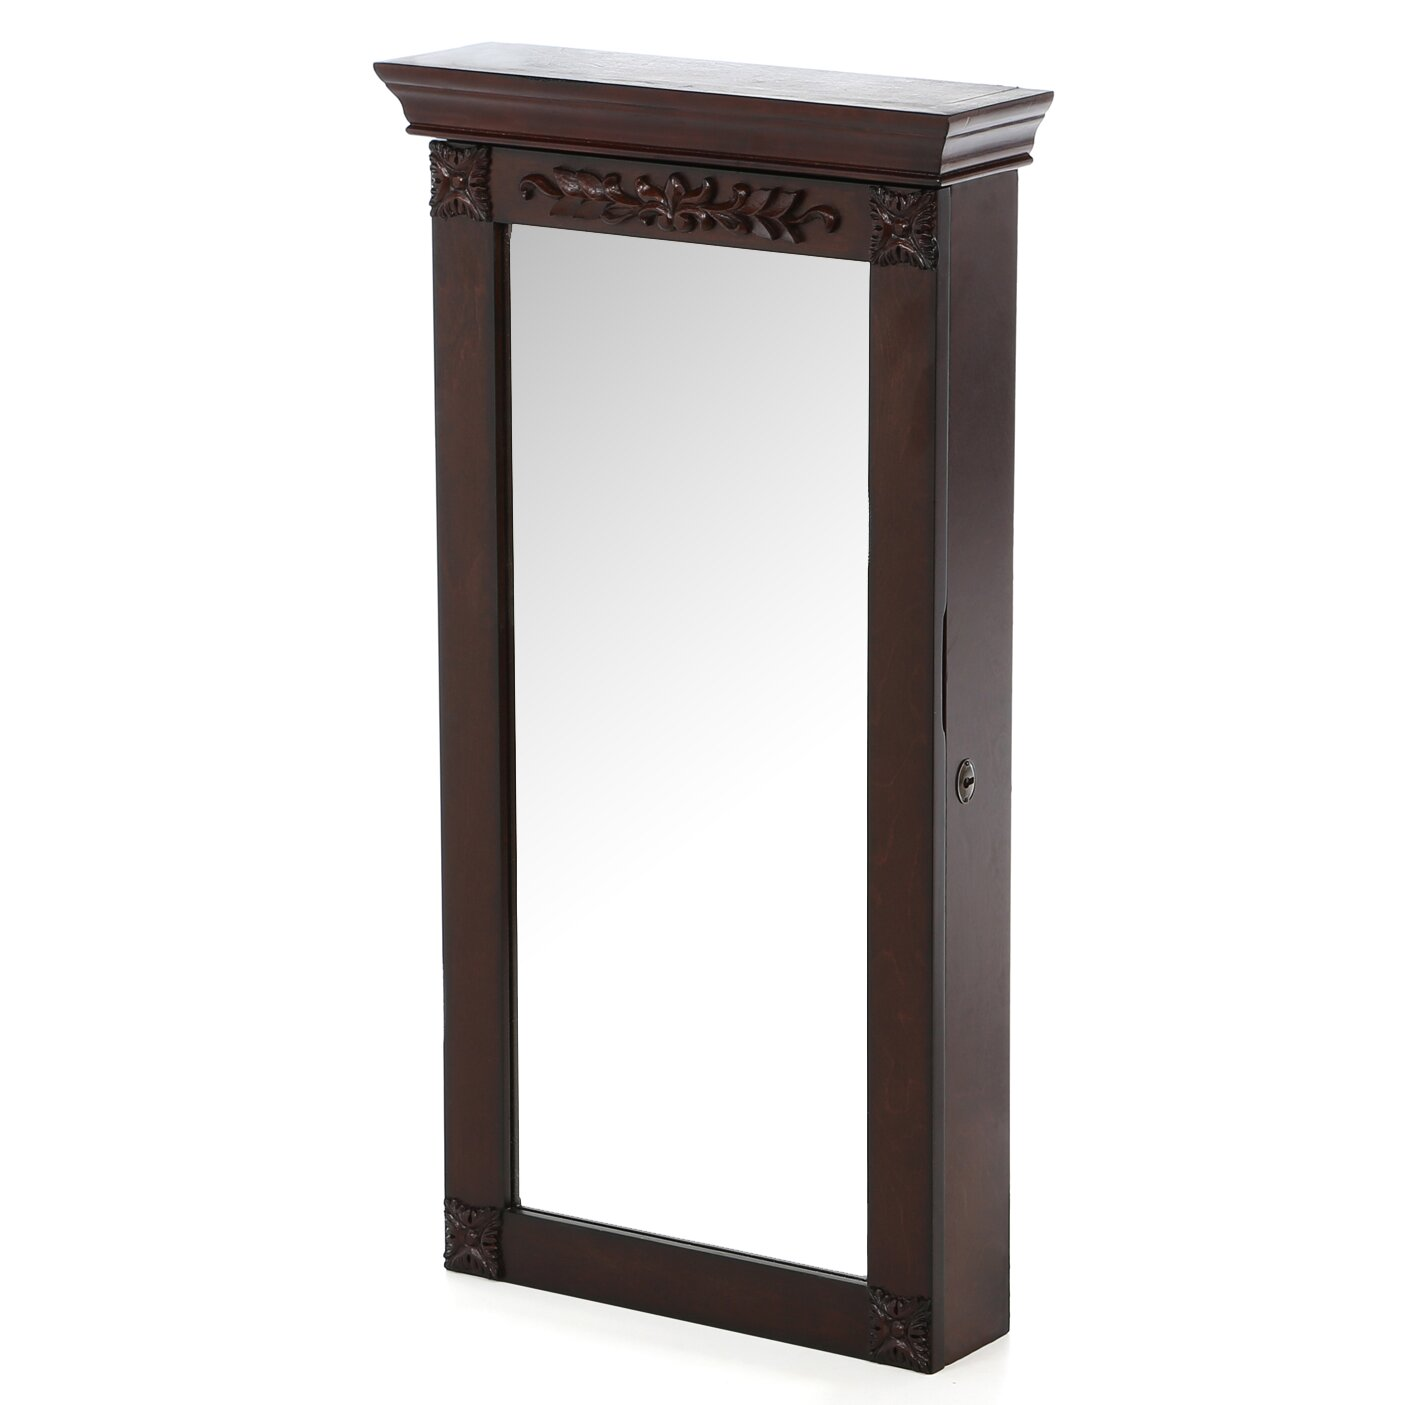 Cheetham Wall Mount Jewelry Armoire with Mirror - Rosalind Wheeler Cheetham Wall Mount Jewelry Armoire With Mirror